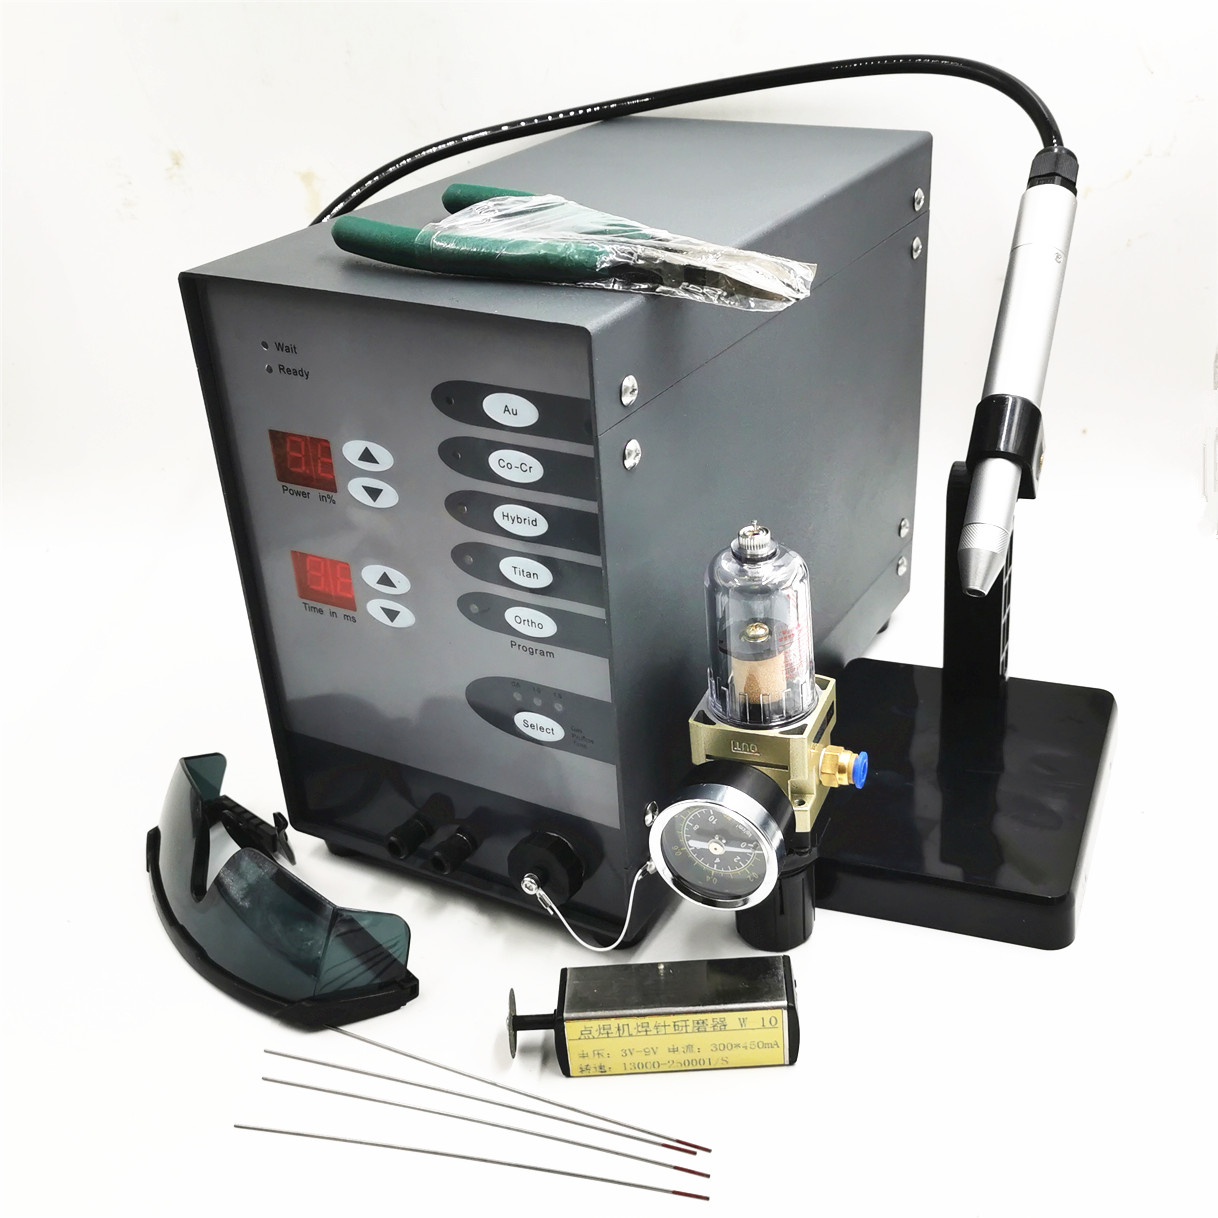 Stainless Steel Spot Welding Machine Laser Welding  Automatic Numerical Control Pulse Argon Arc Welder Jewelry Spot Welder